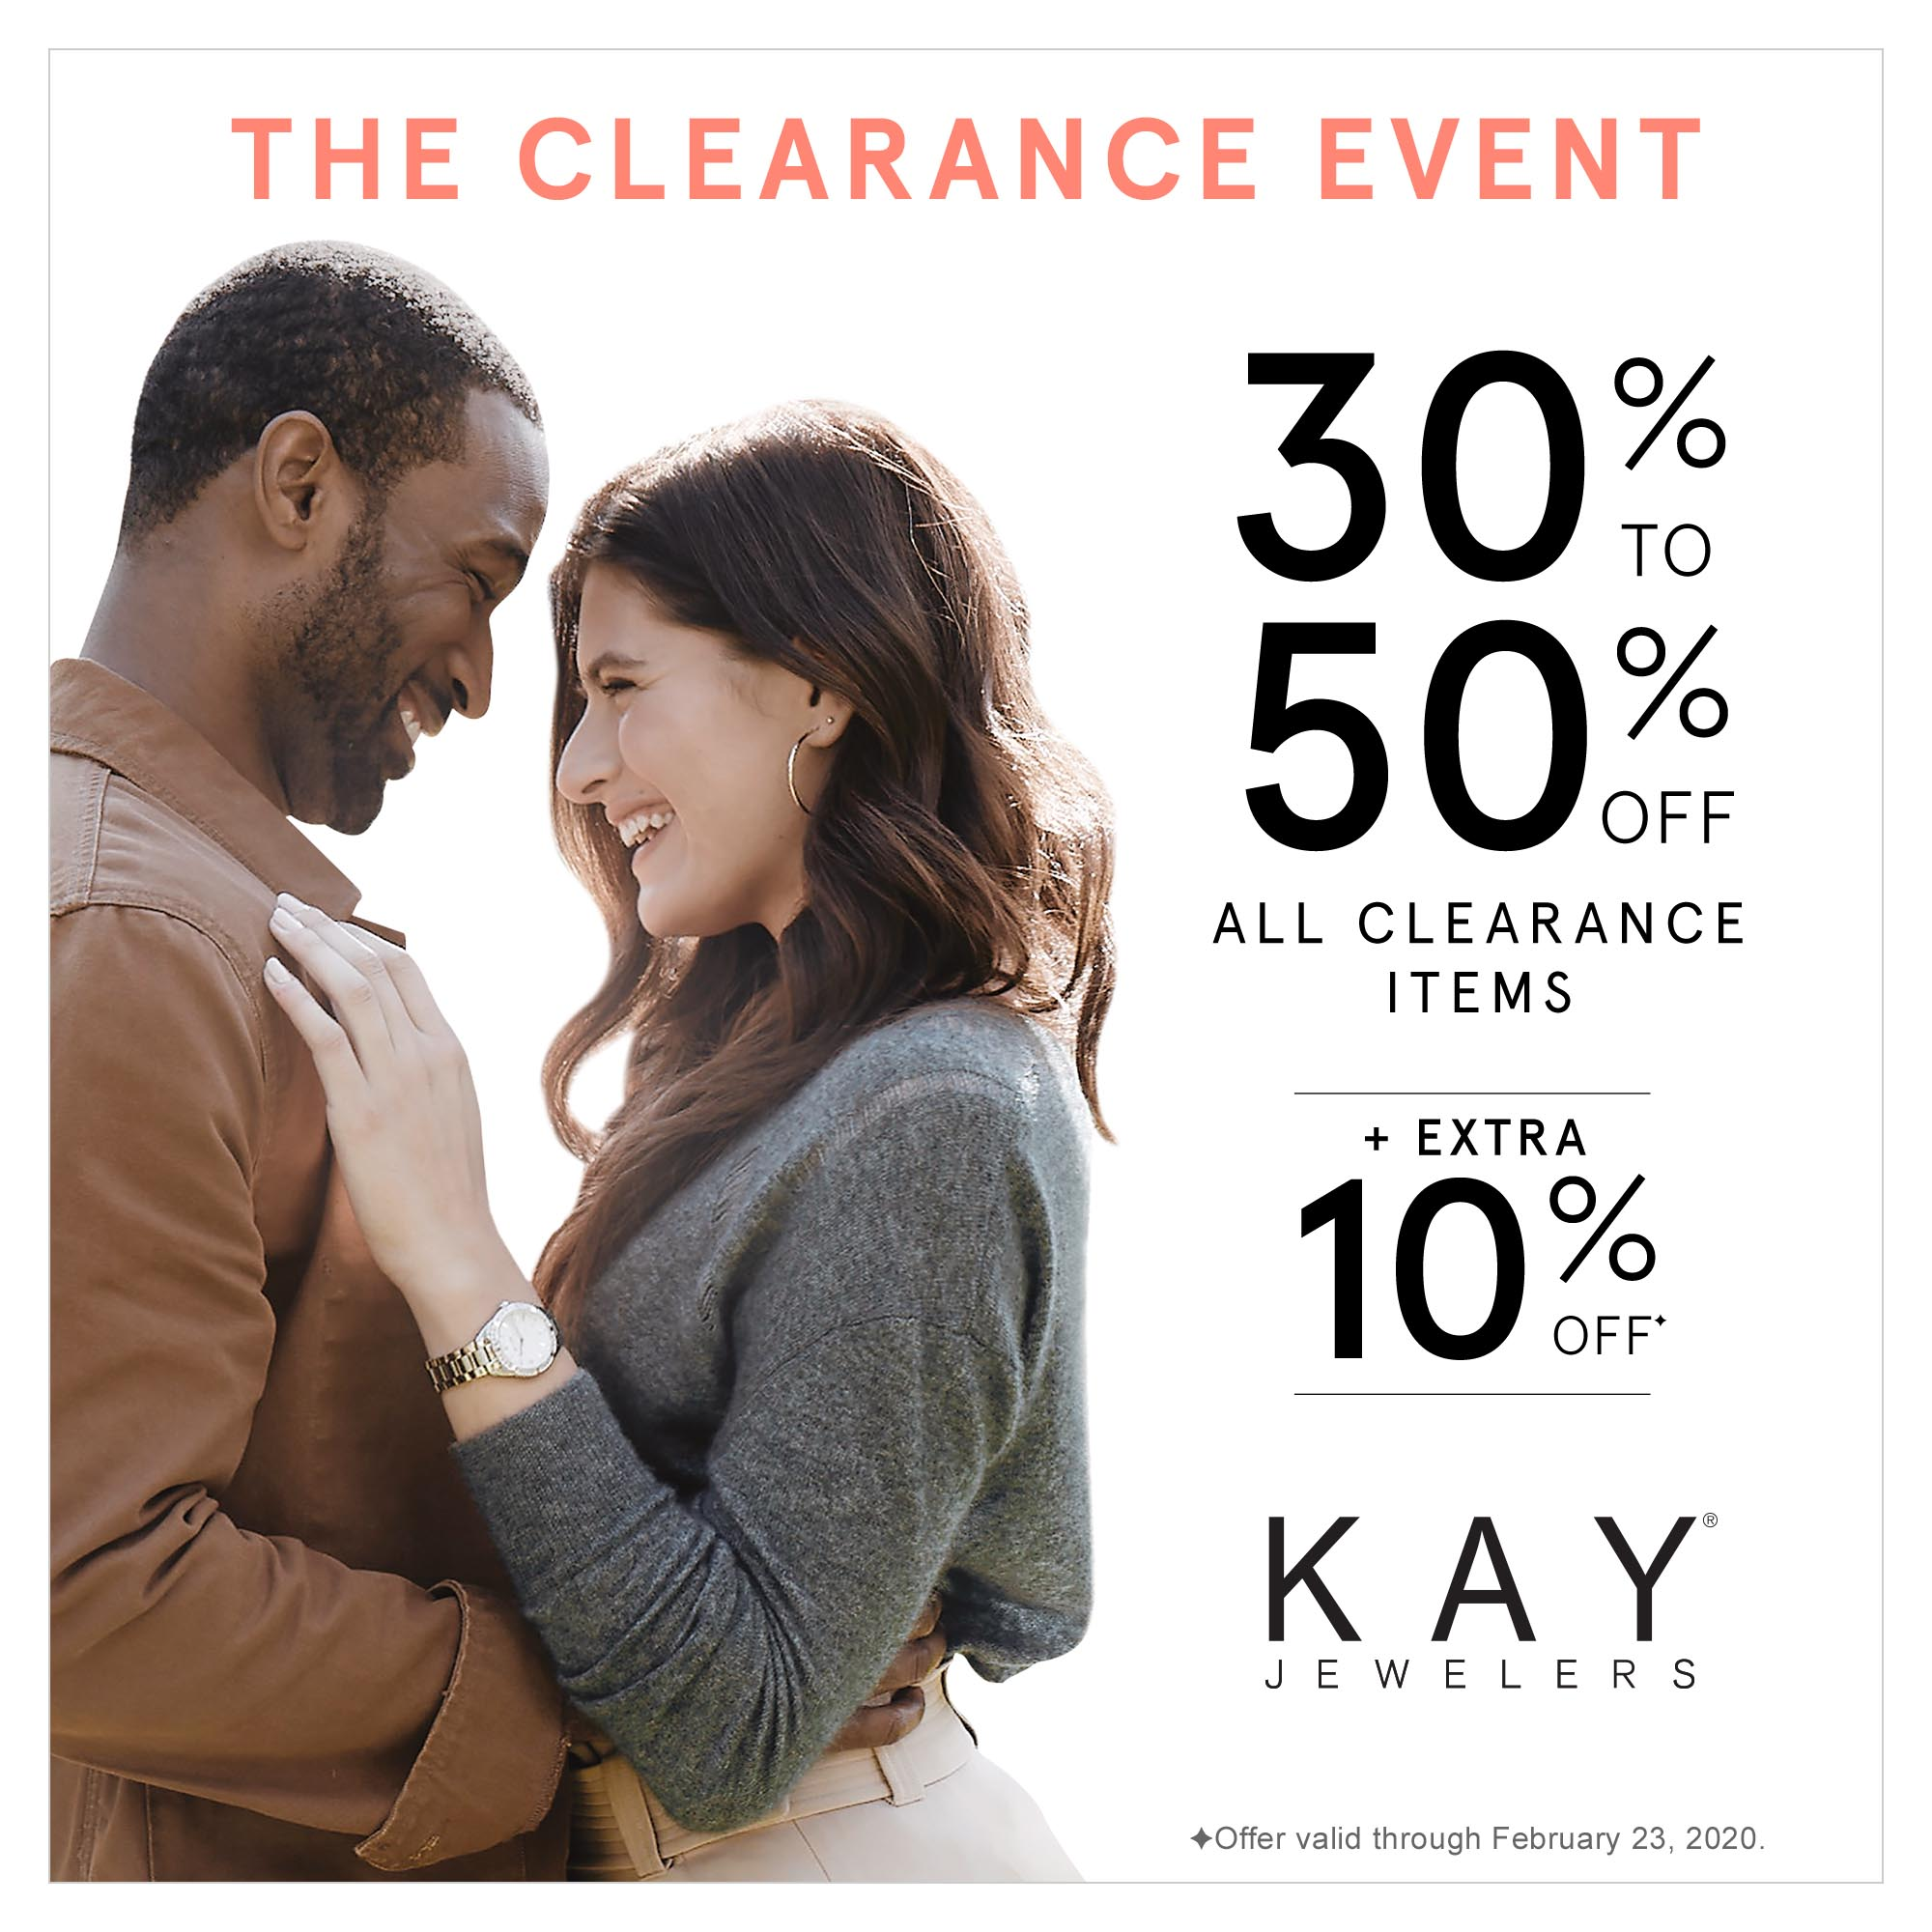 The Clearance Event! from Kay Jewelers